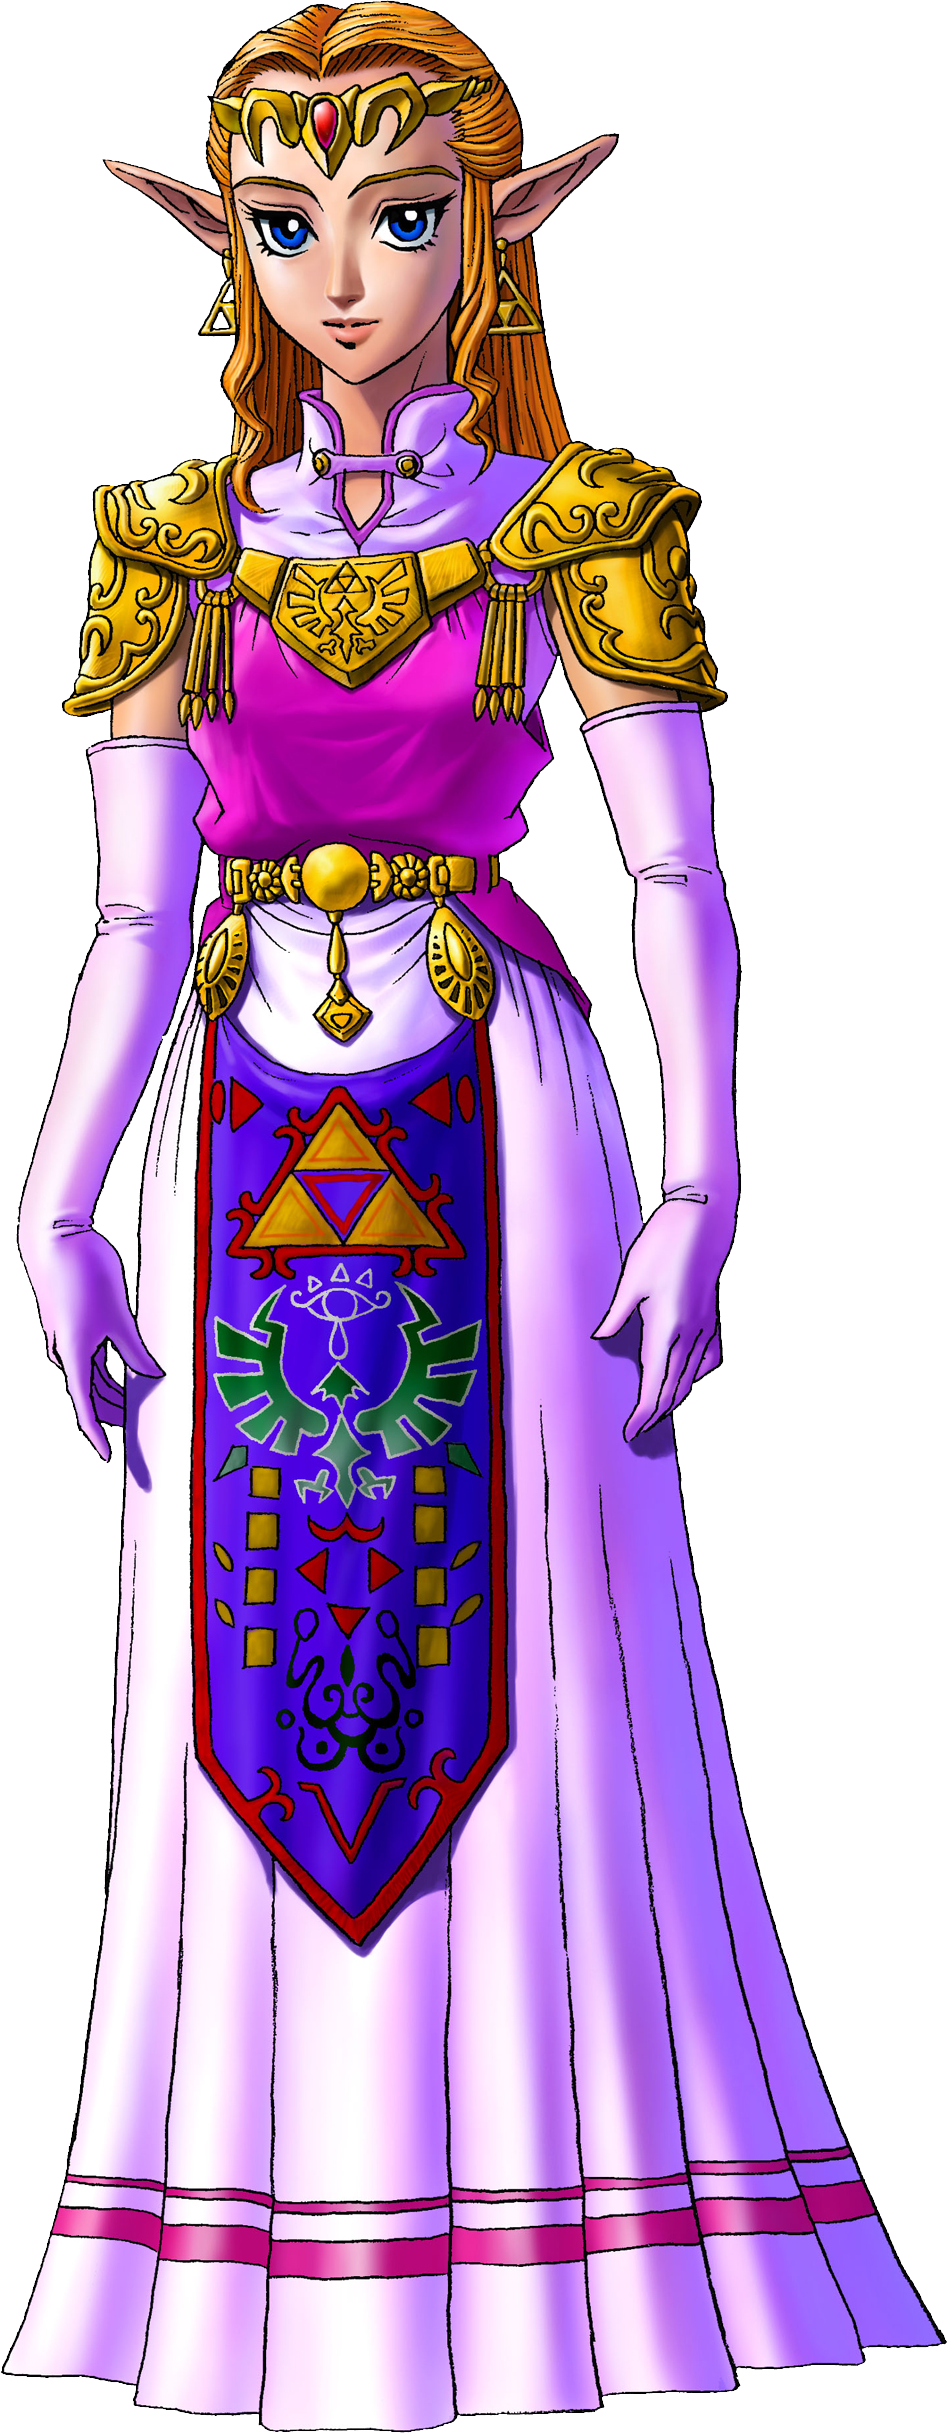 princess zelda love interest wiki fandom powered by wikia